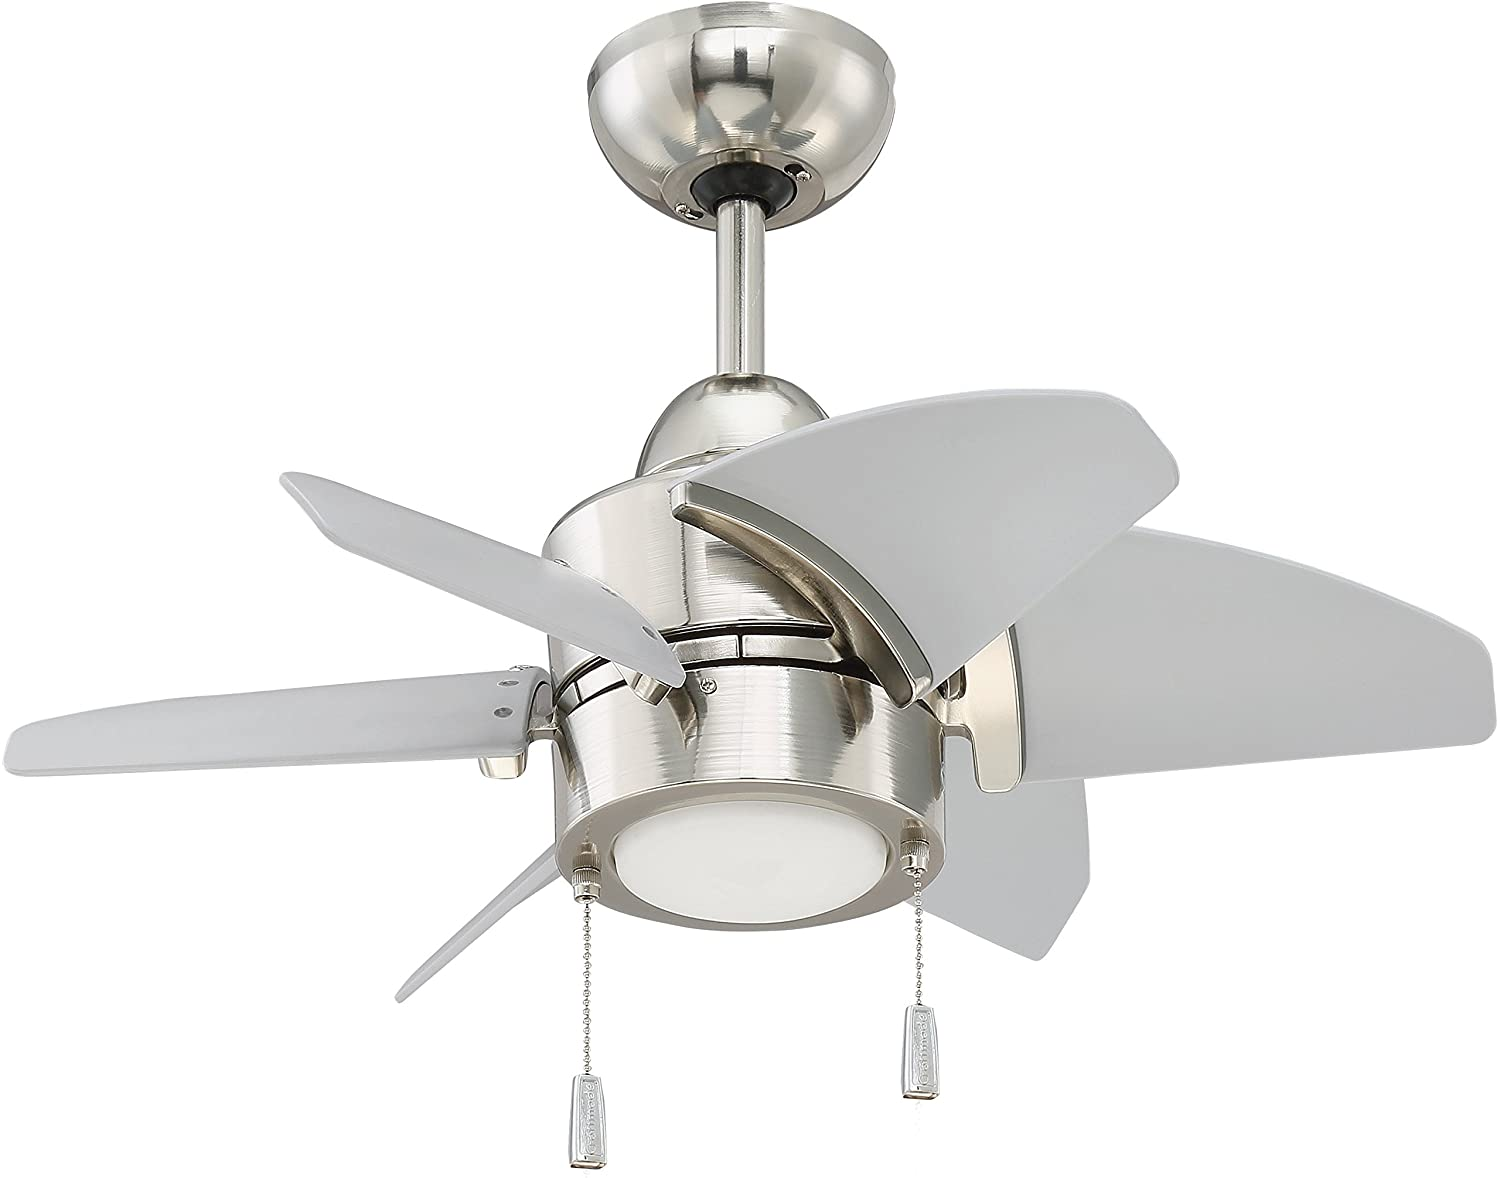 Craftmade Outdoor Ceiling Fan with LED Light PPL24PLN6 Propel 24 ...